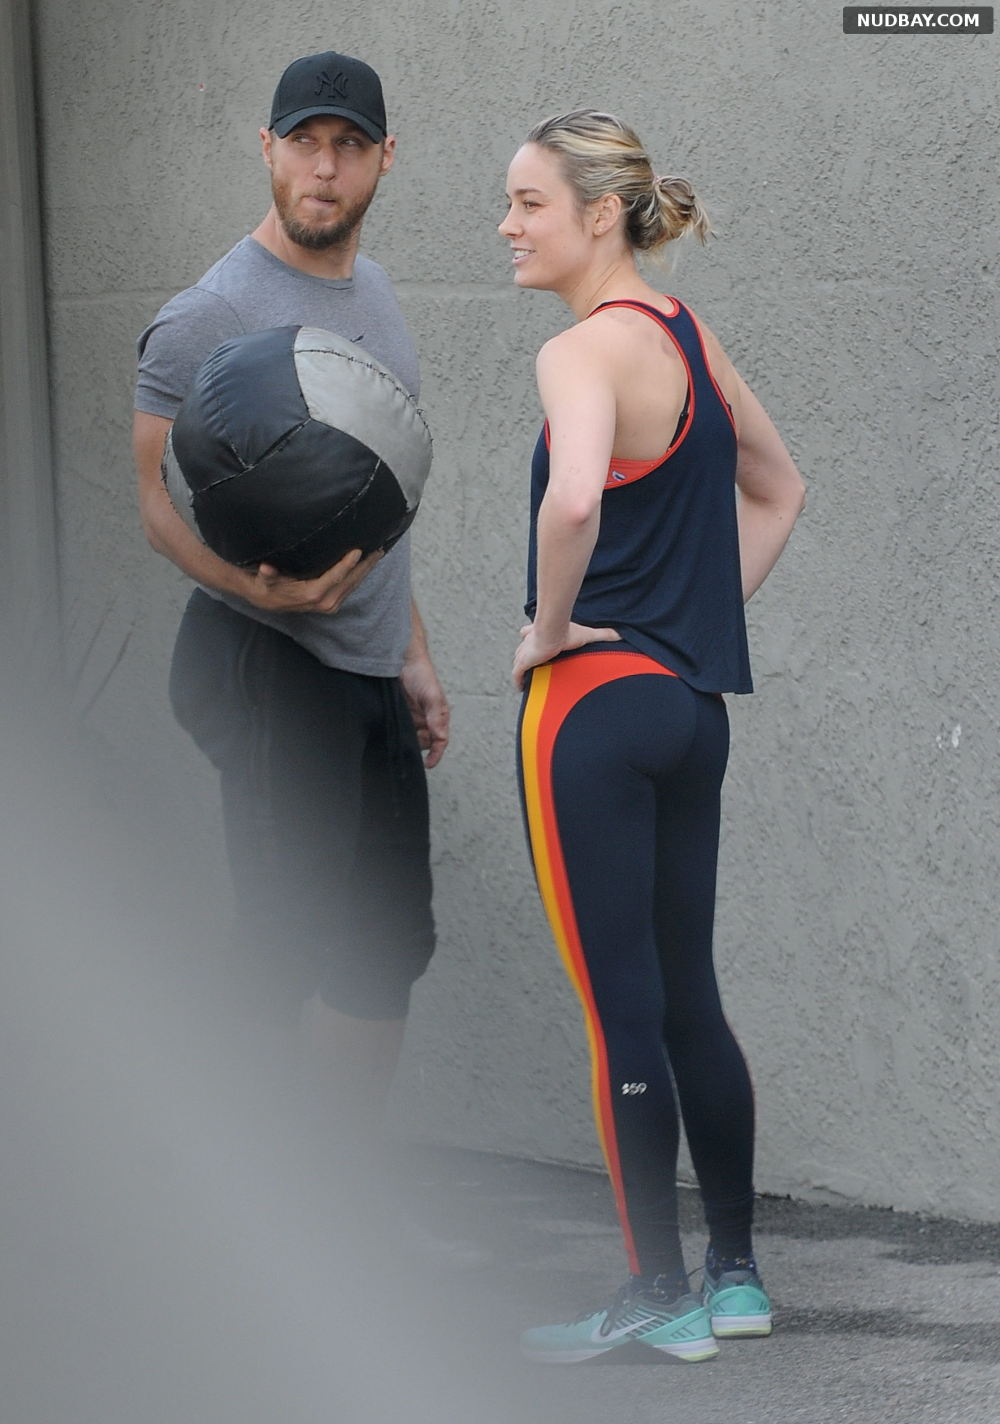 Brie Larson Booty works up a sweat at the gym in Los Angeles Jan 09 2019